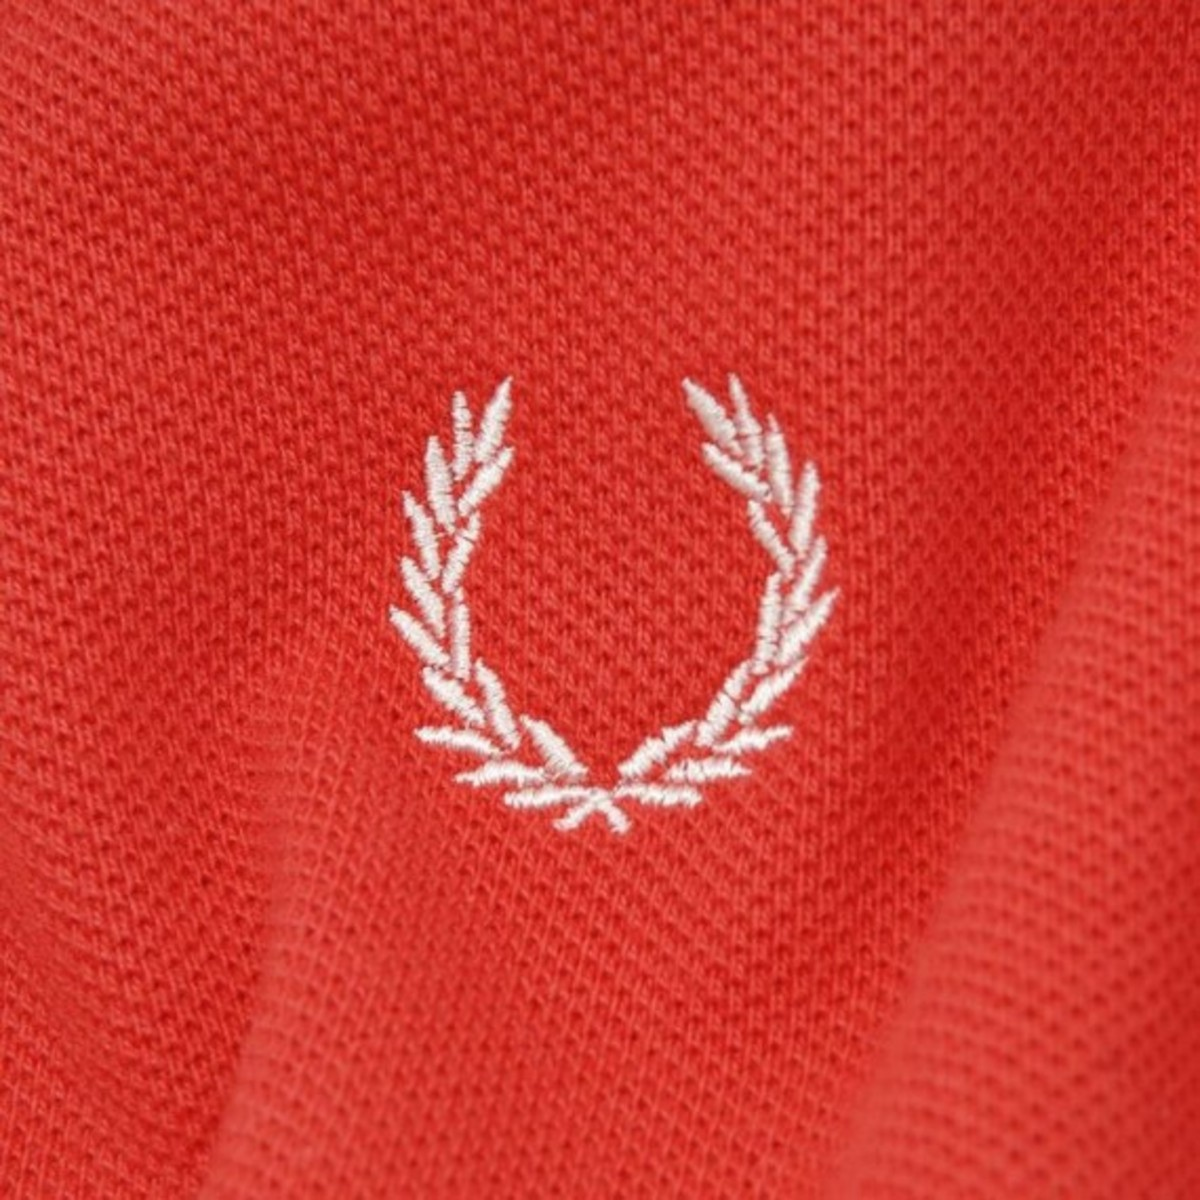 fred-perry-laurel-wreath-blank-canvas-cycling-30